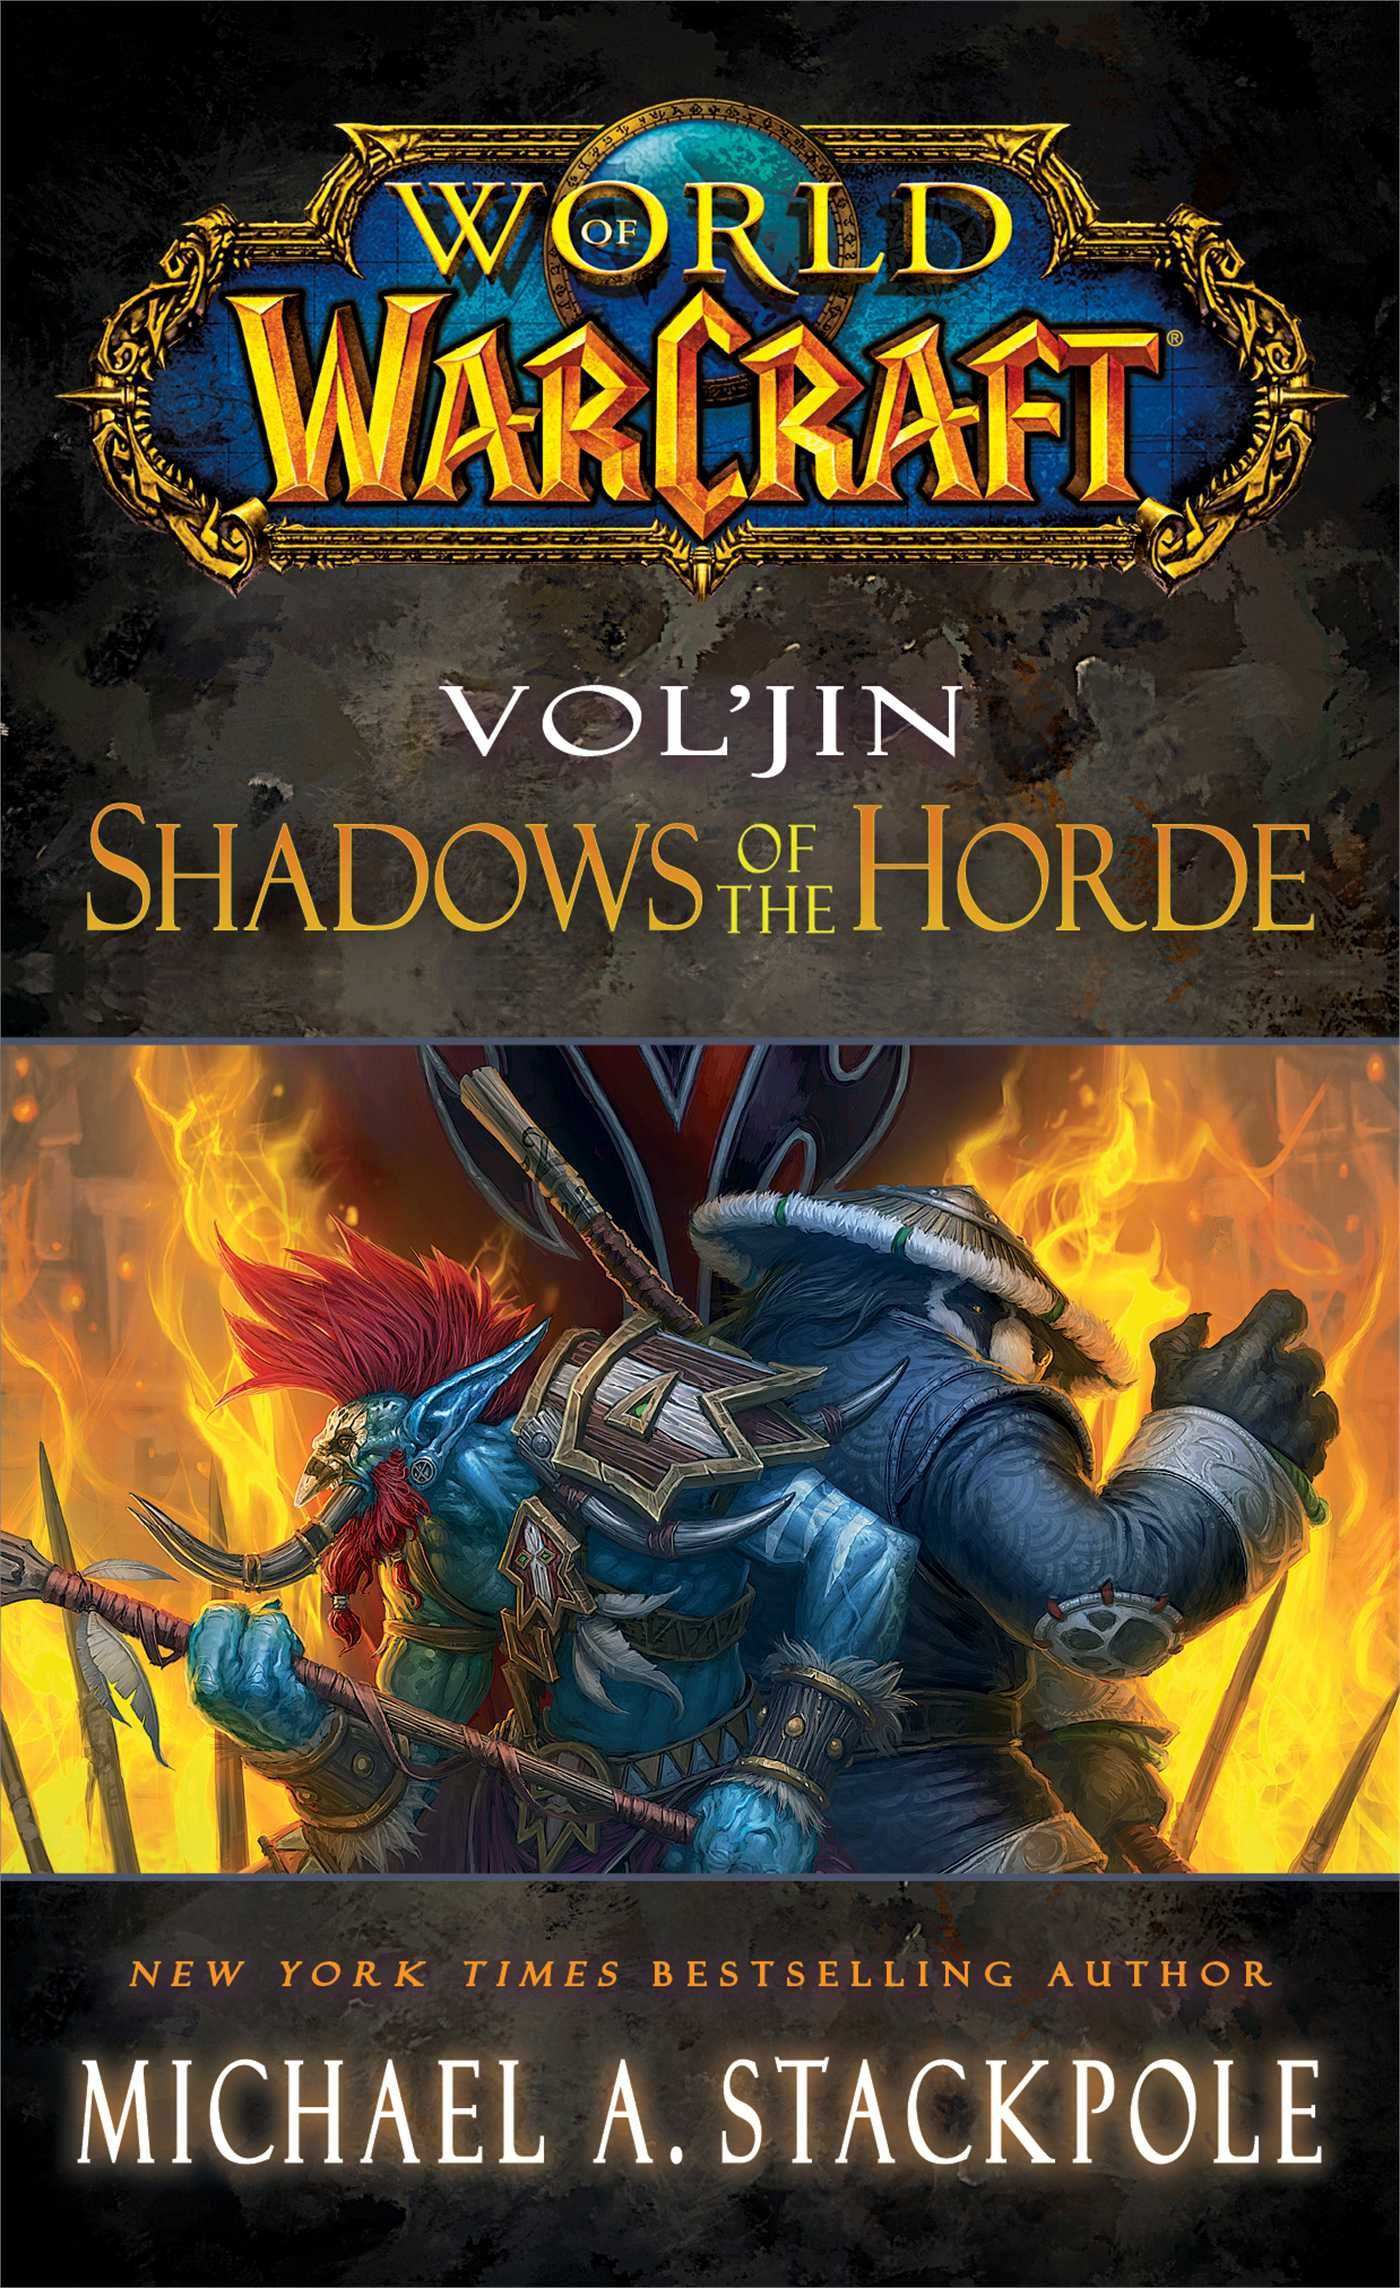 World of Warcraft. Vol'jin: Shadows of the Horde - 1